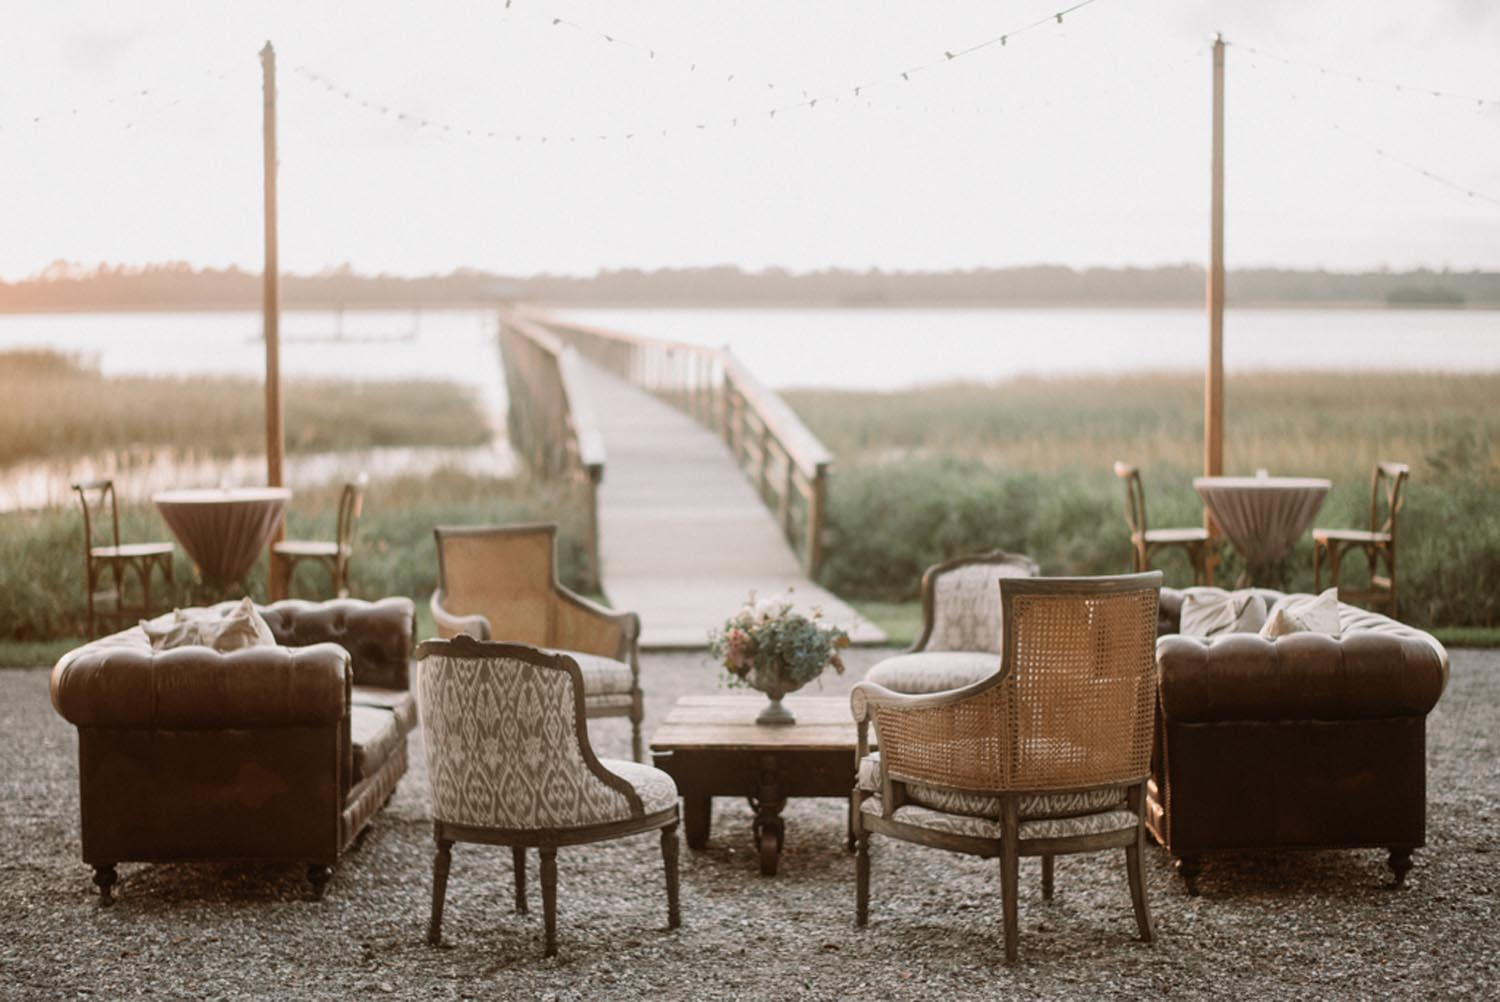 Leather and bamboo wedding lounge area. Wedding planning and design by A Charleston Bride.